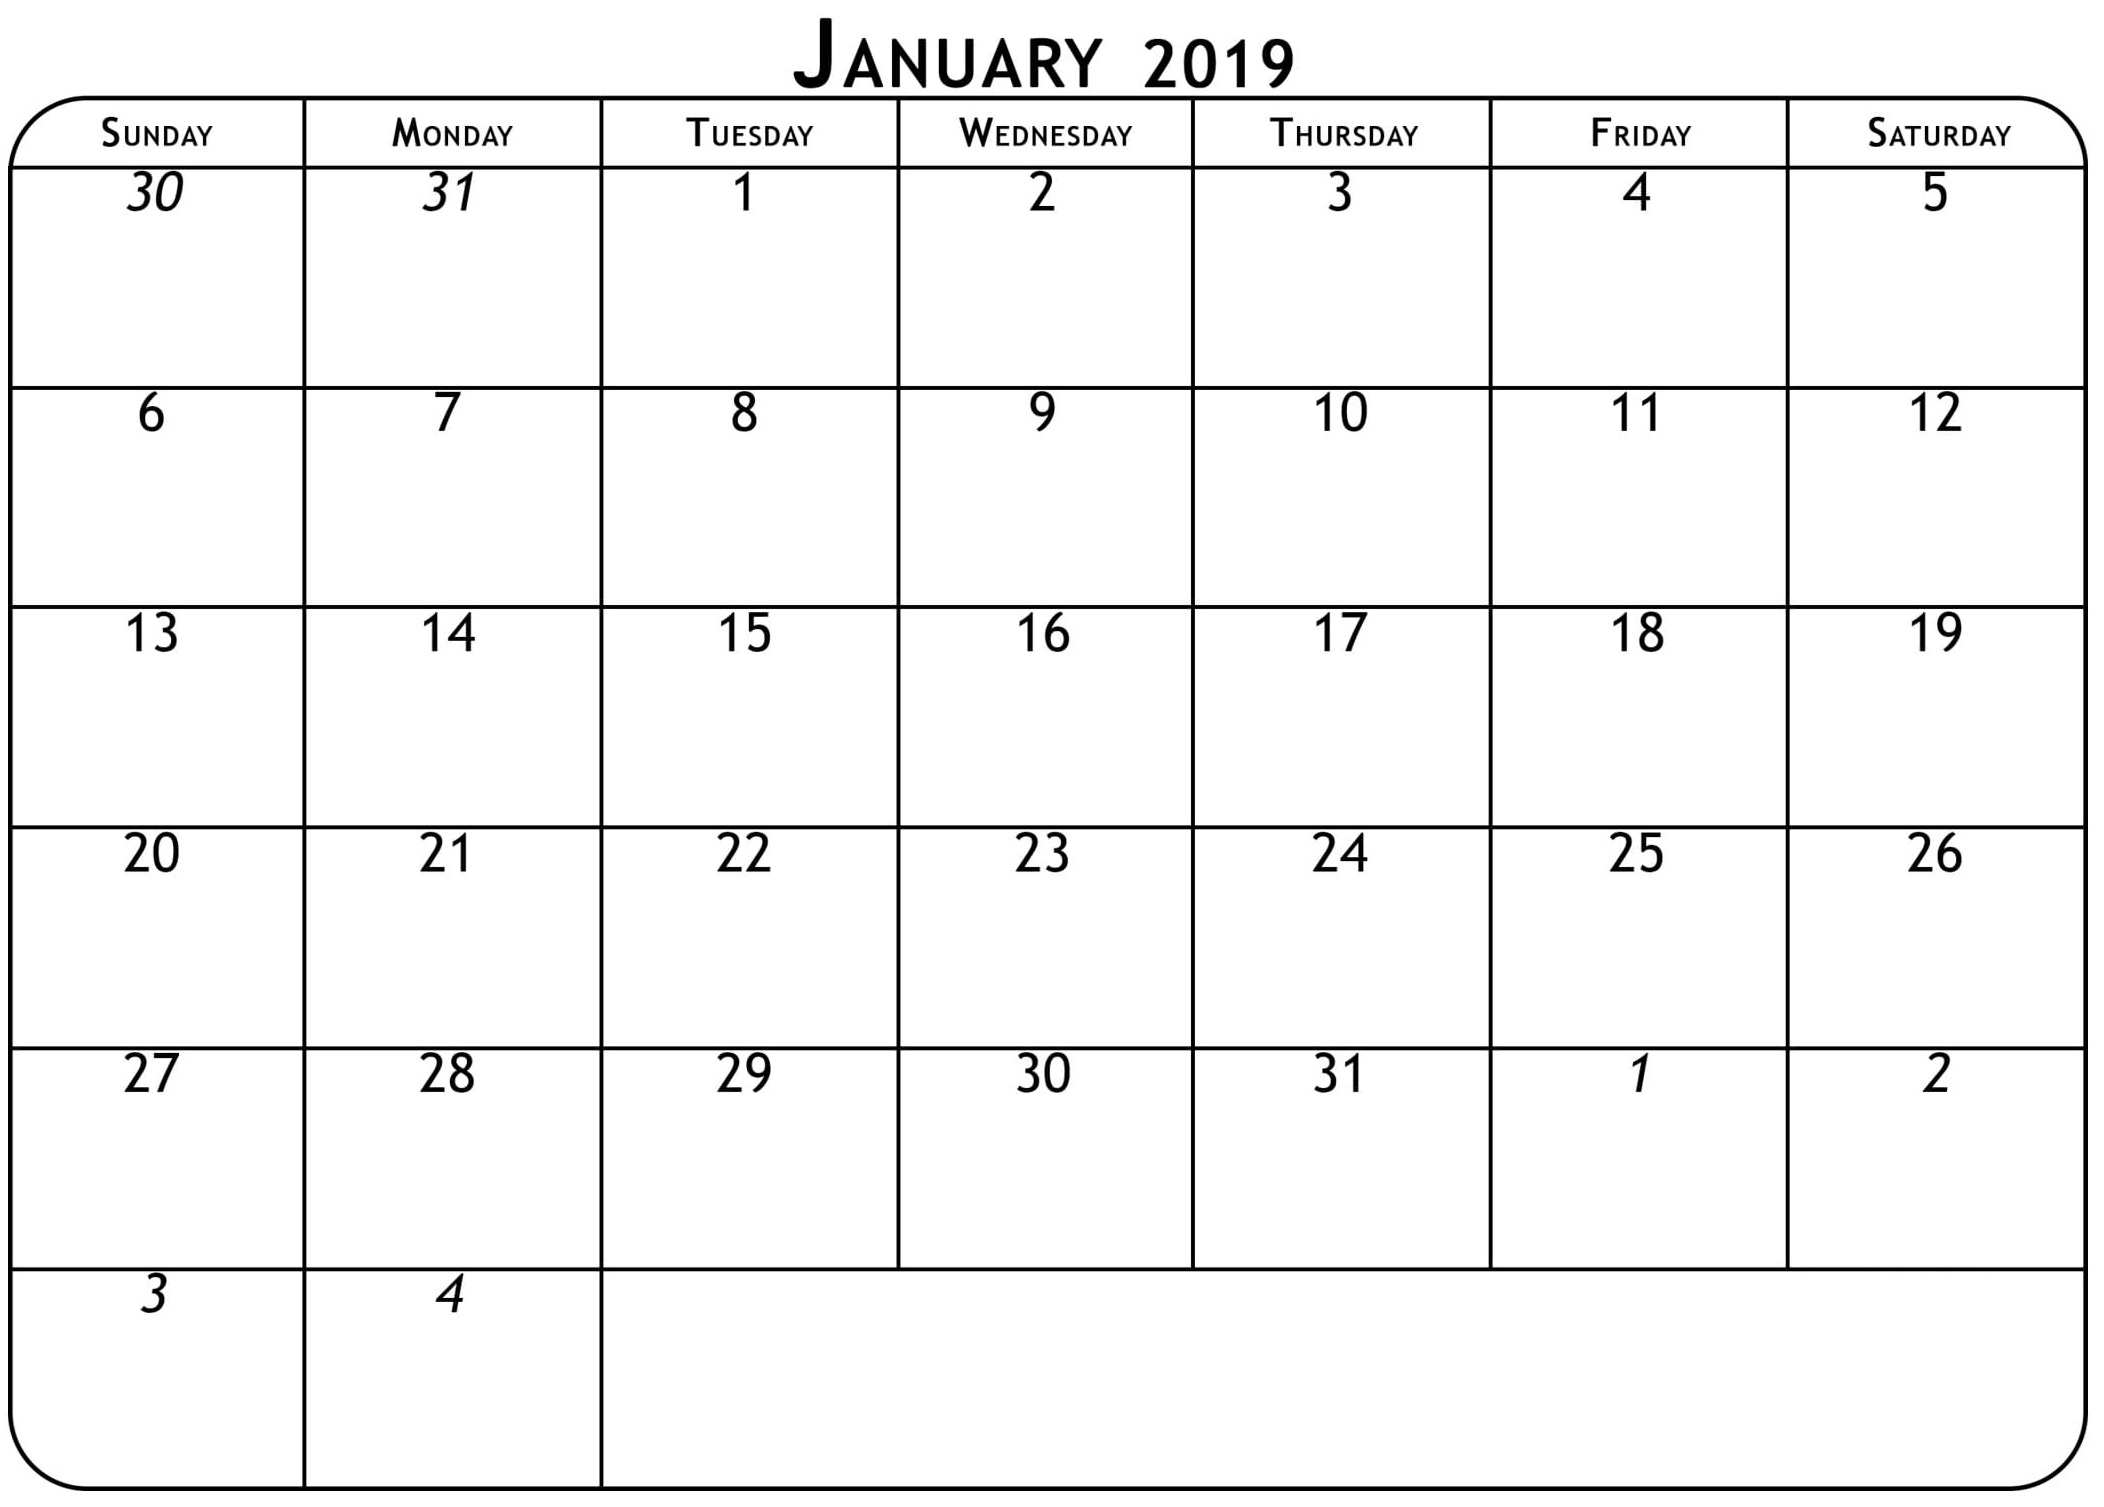 January 2019 Calendar Coloring Page